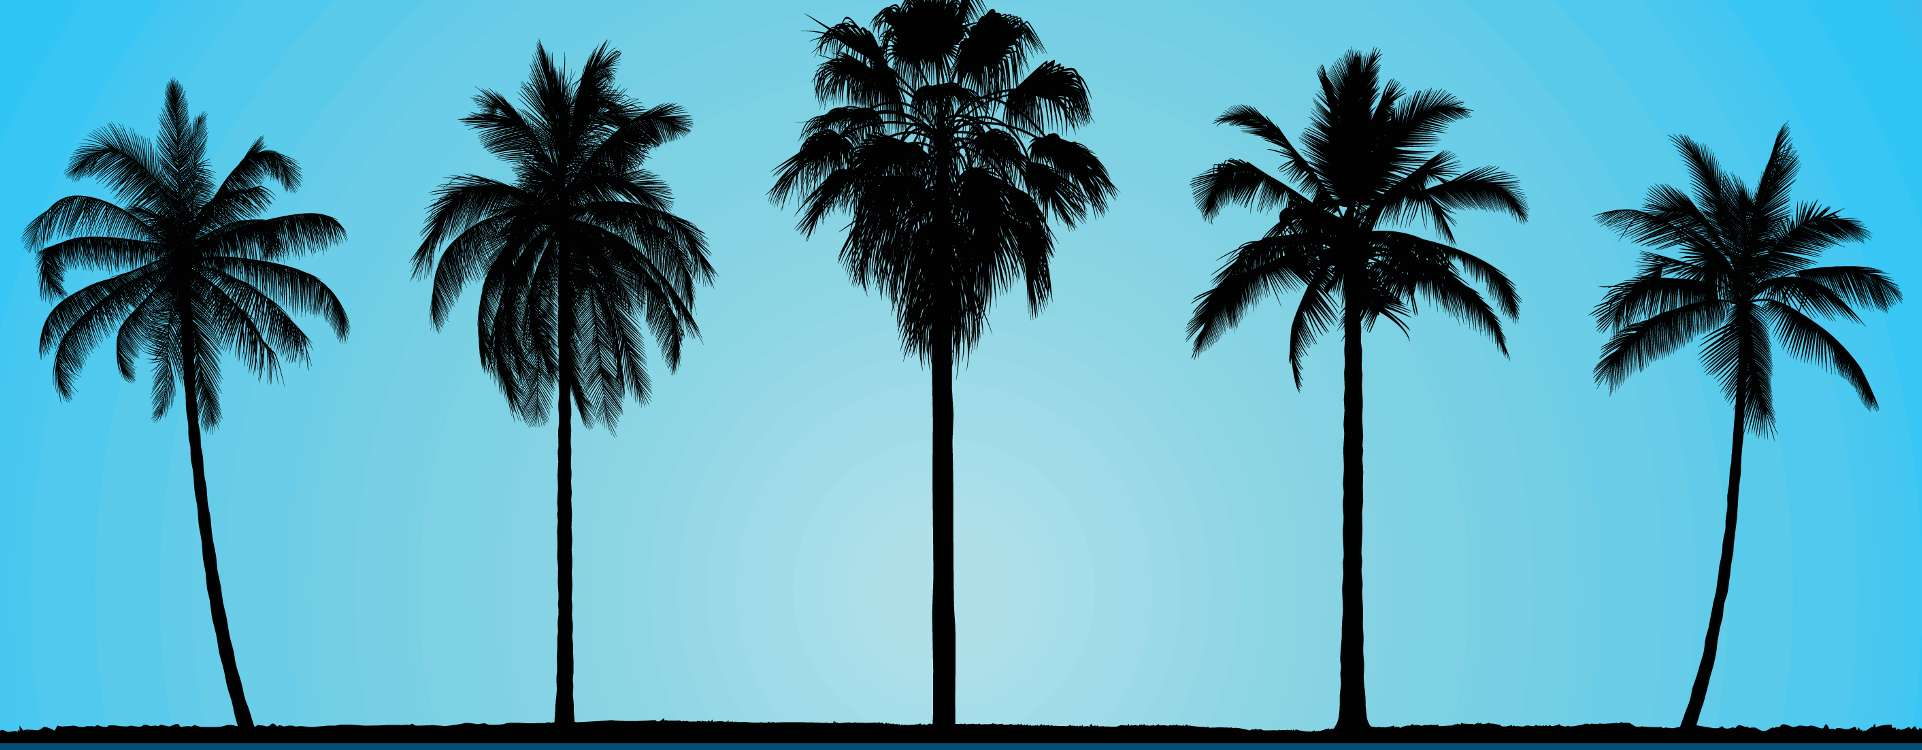 Palm trees in front of a blue sky